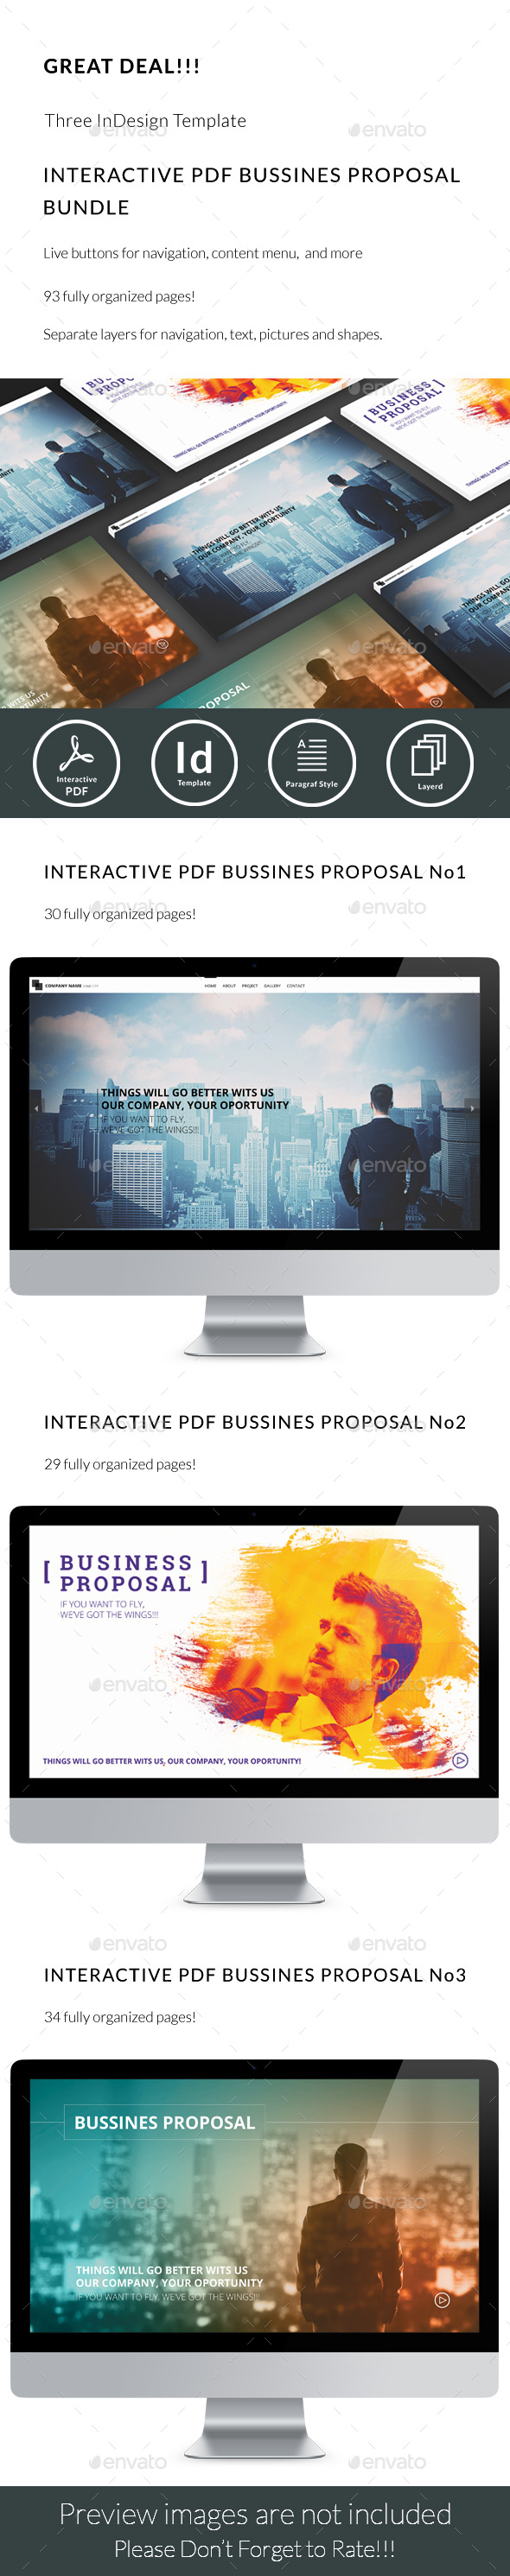 Interactive PDF Business Proposal Bundle - ePublishing